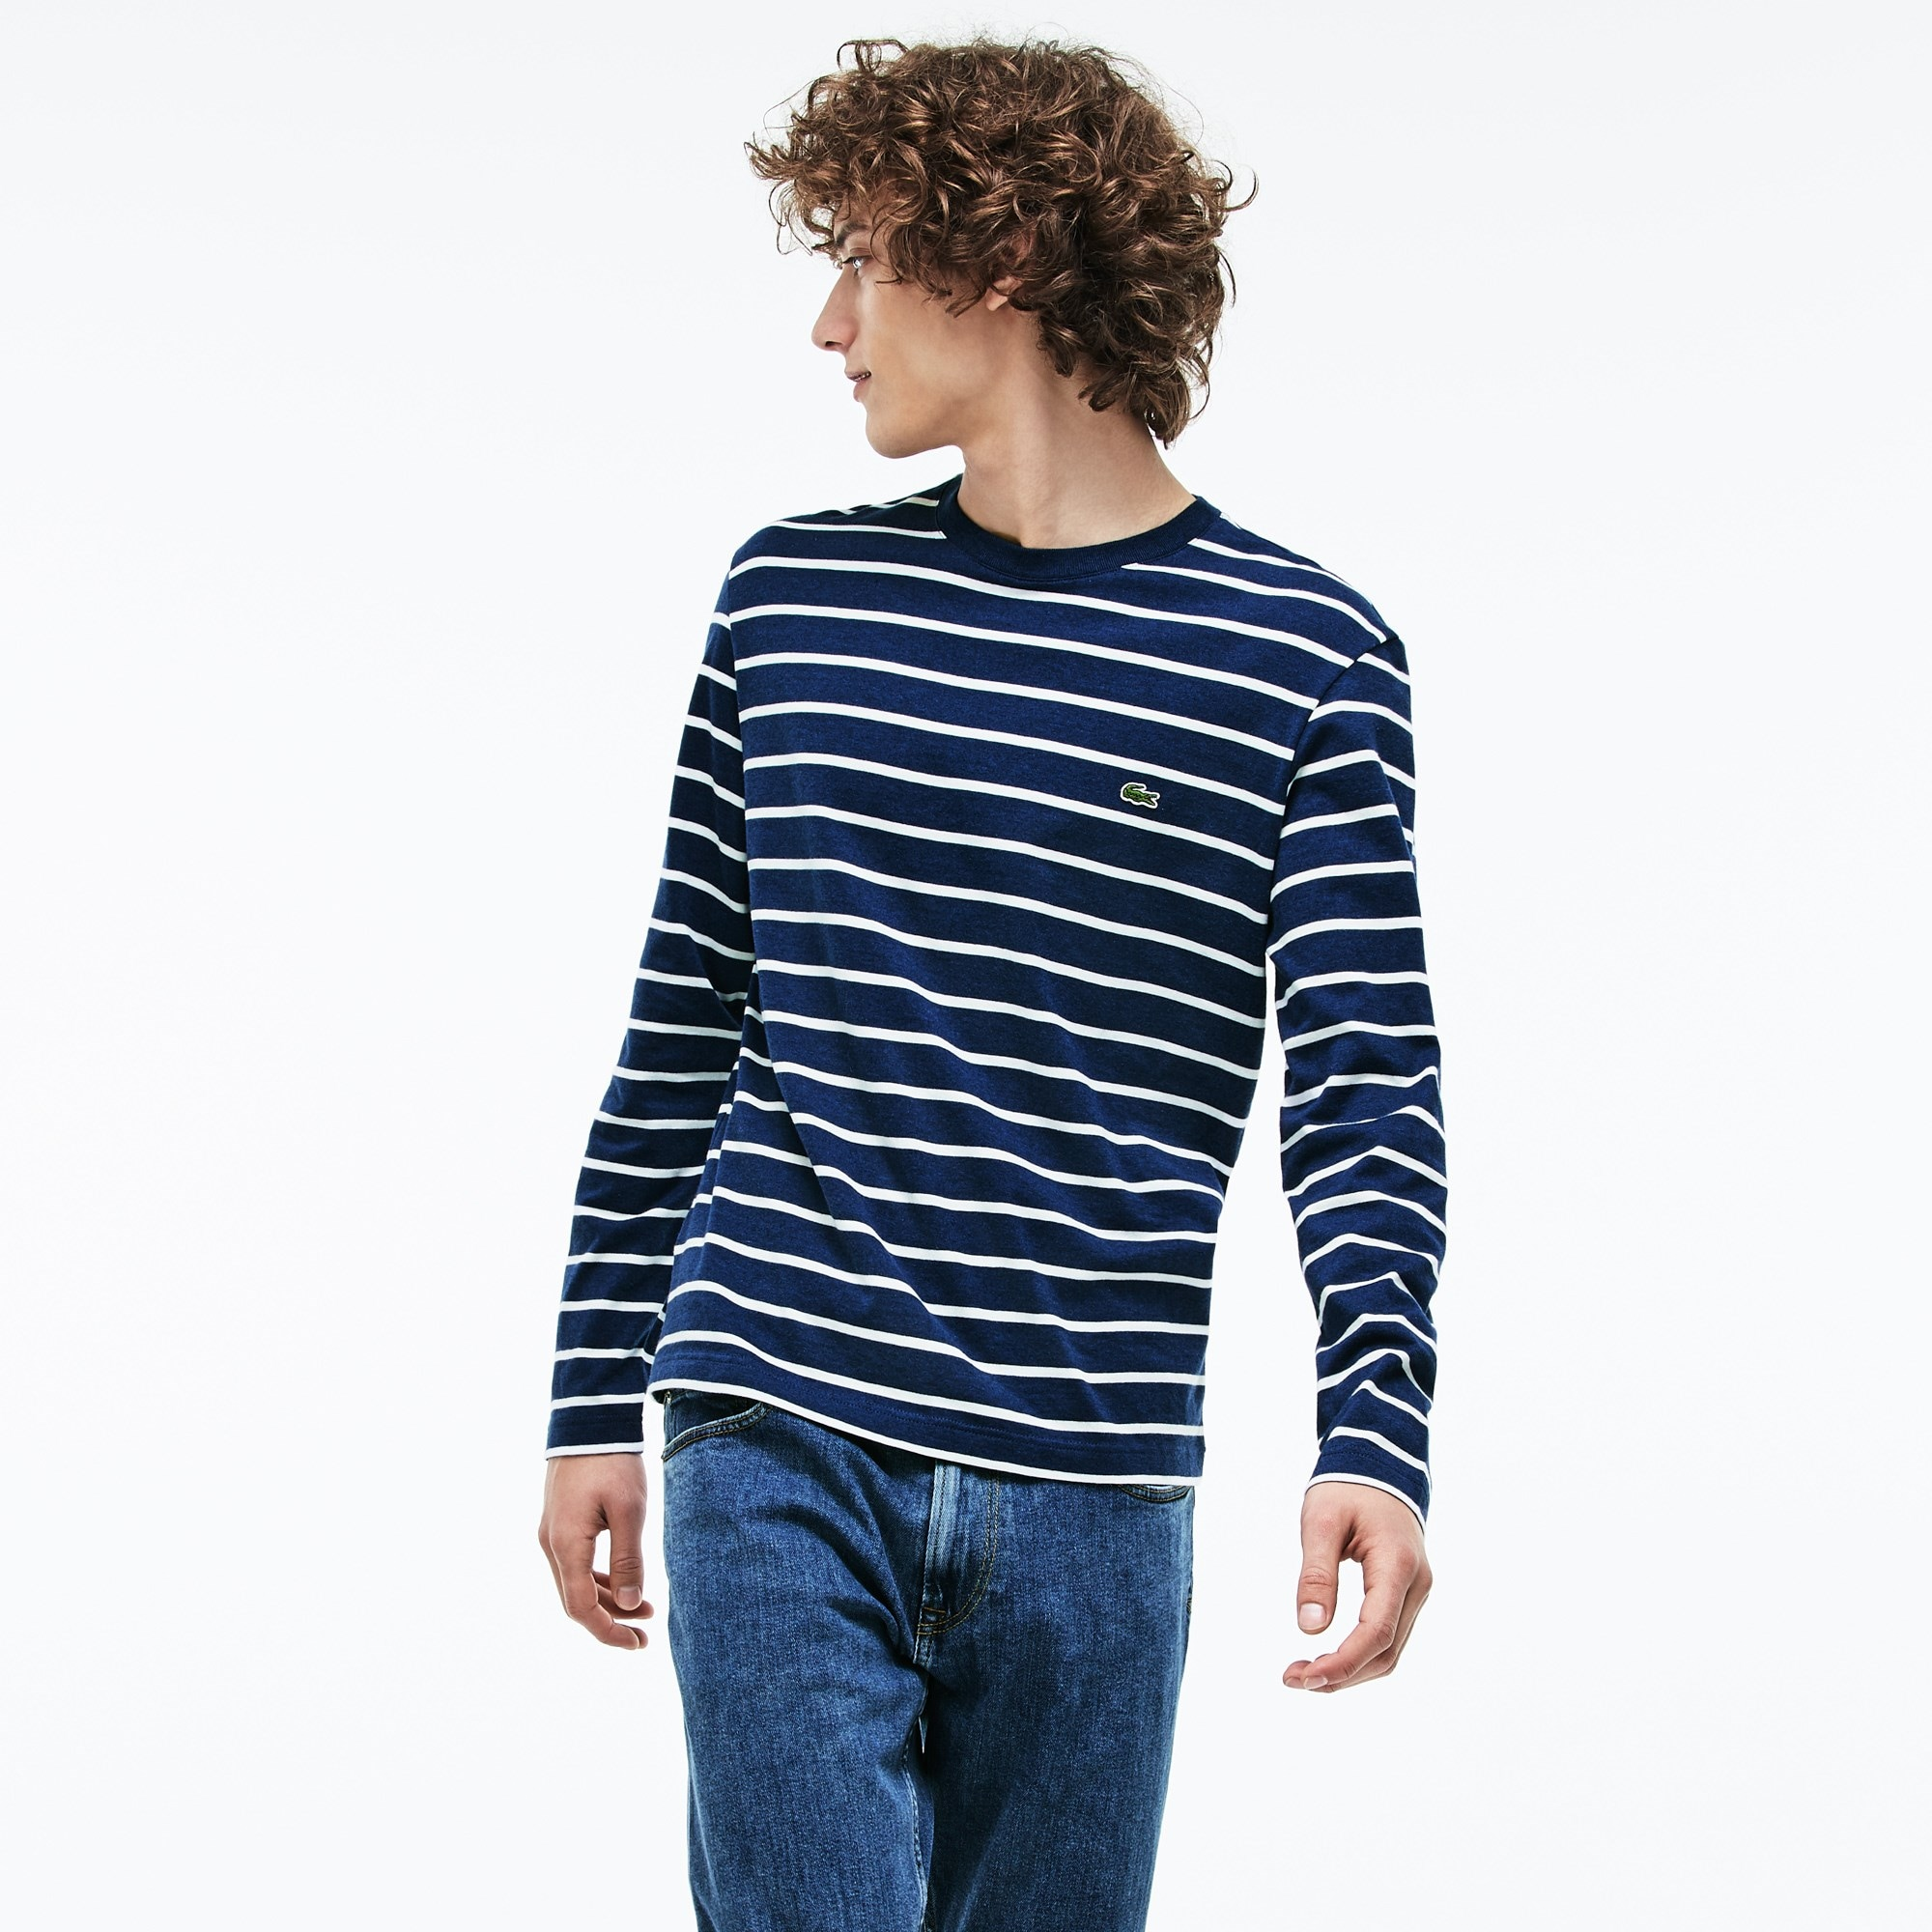 Men's Crew Neck Striped Jersey T-shirt